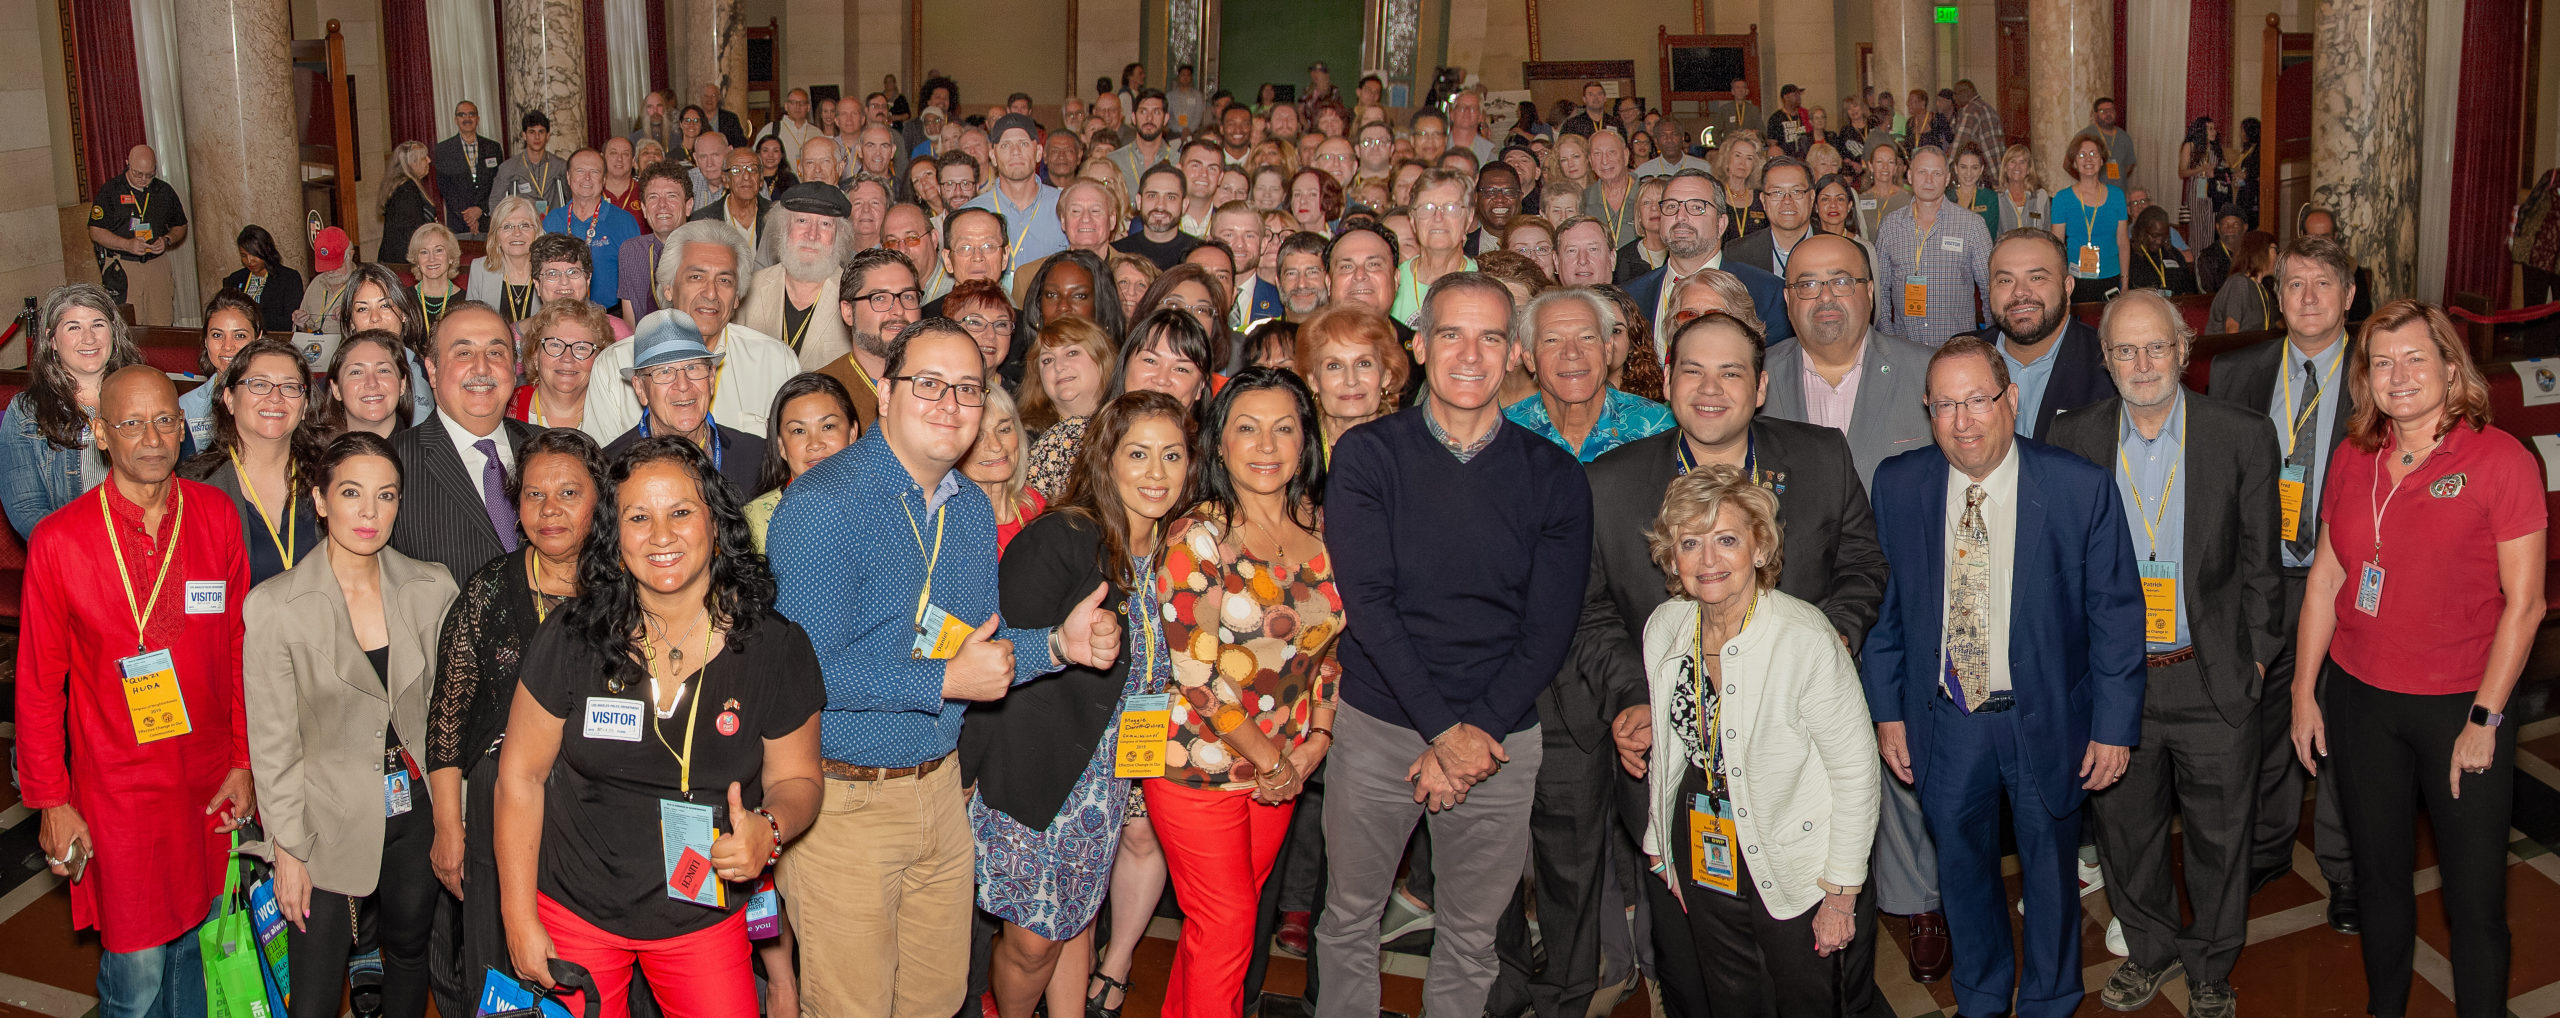 Neighborhood Council members with the Mayor of Los Angeles at the 2019 Congress of Neighborhoods